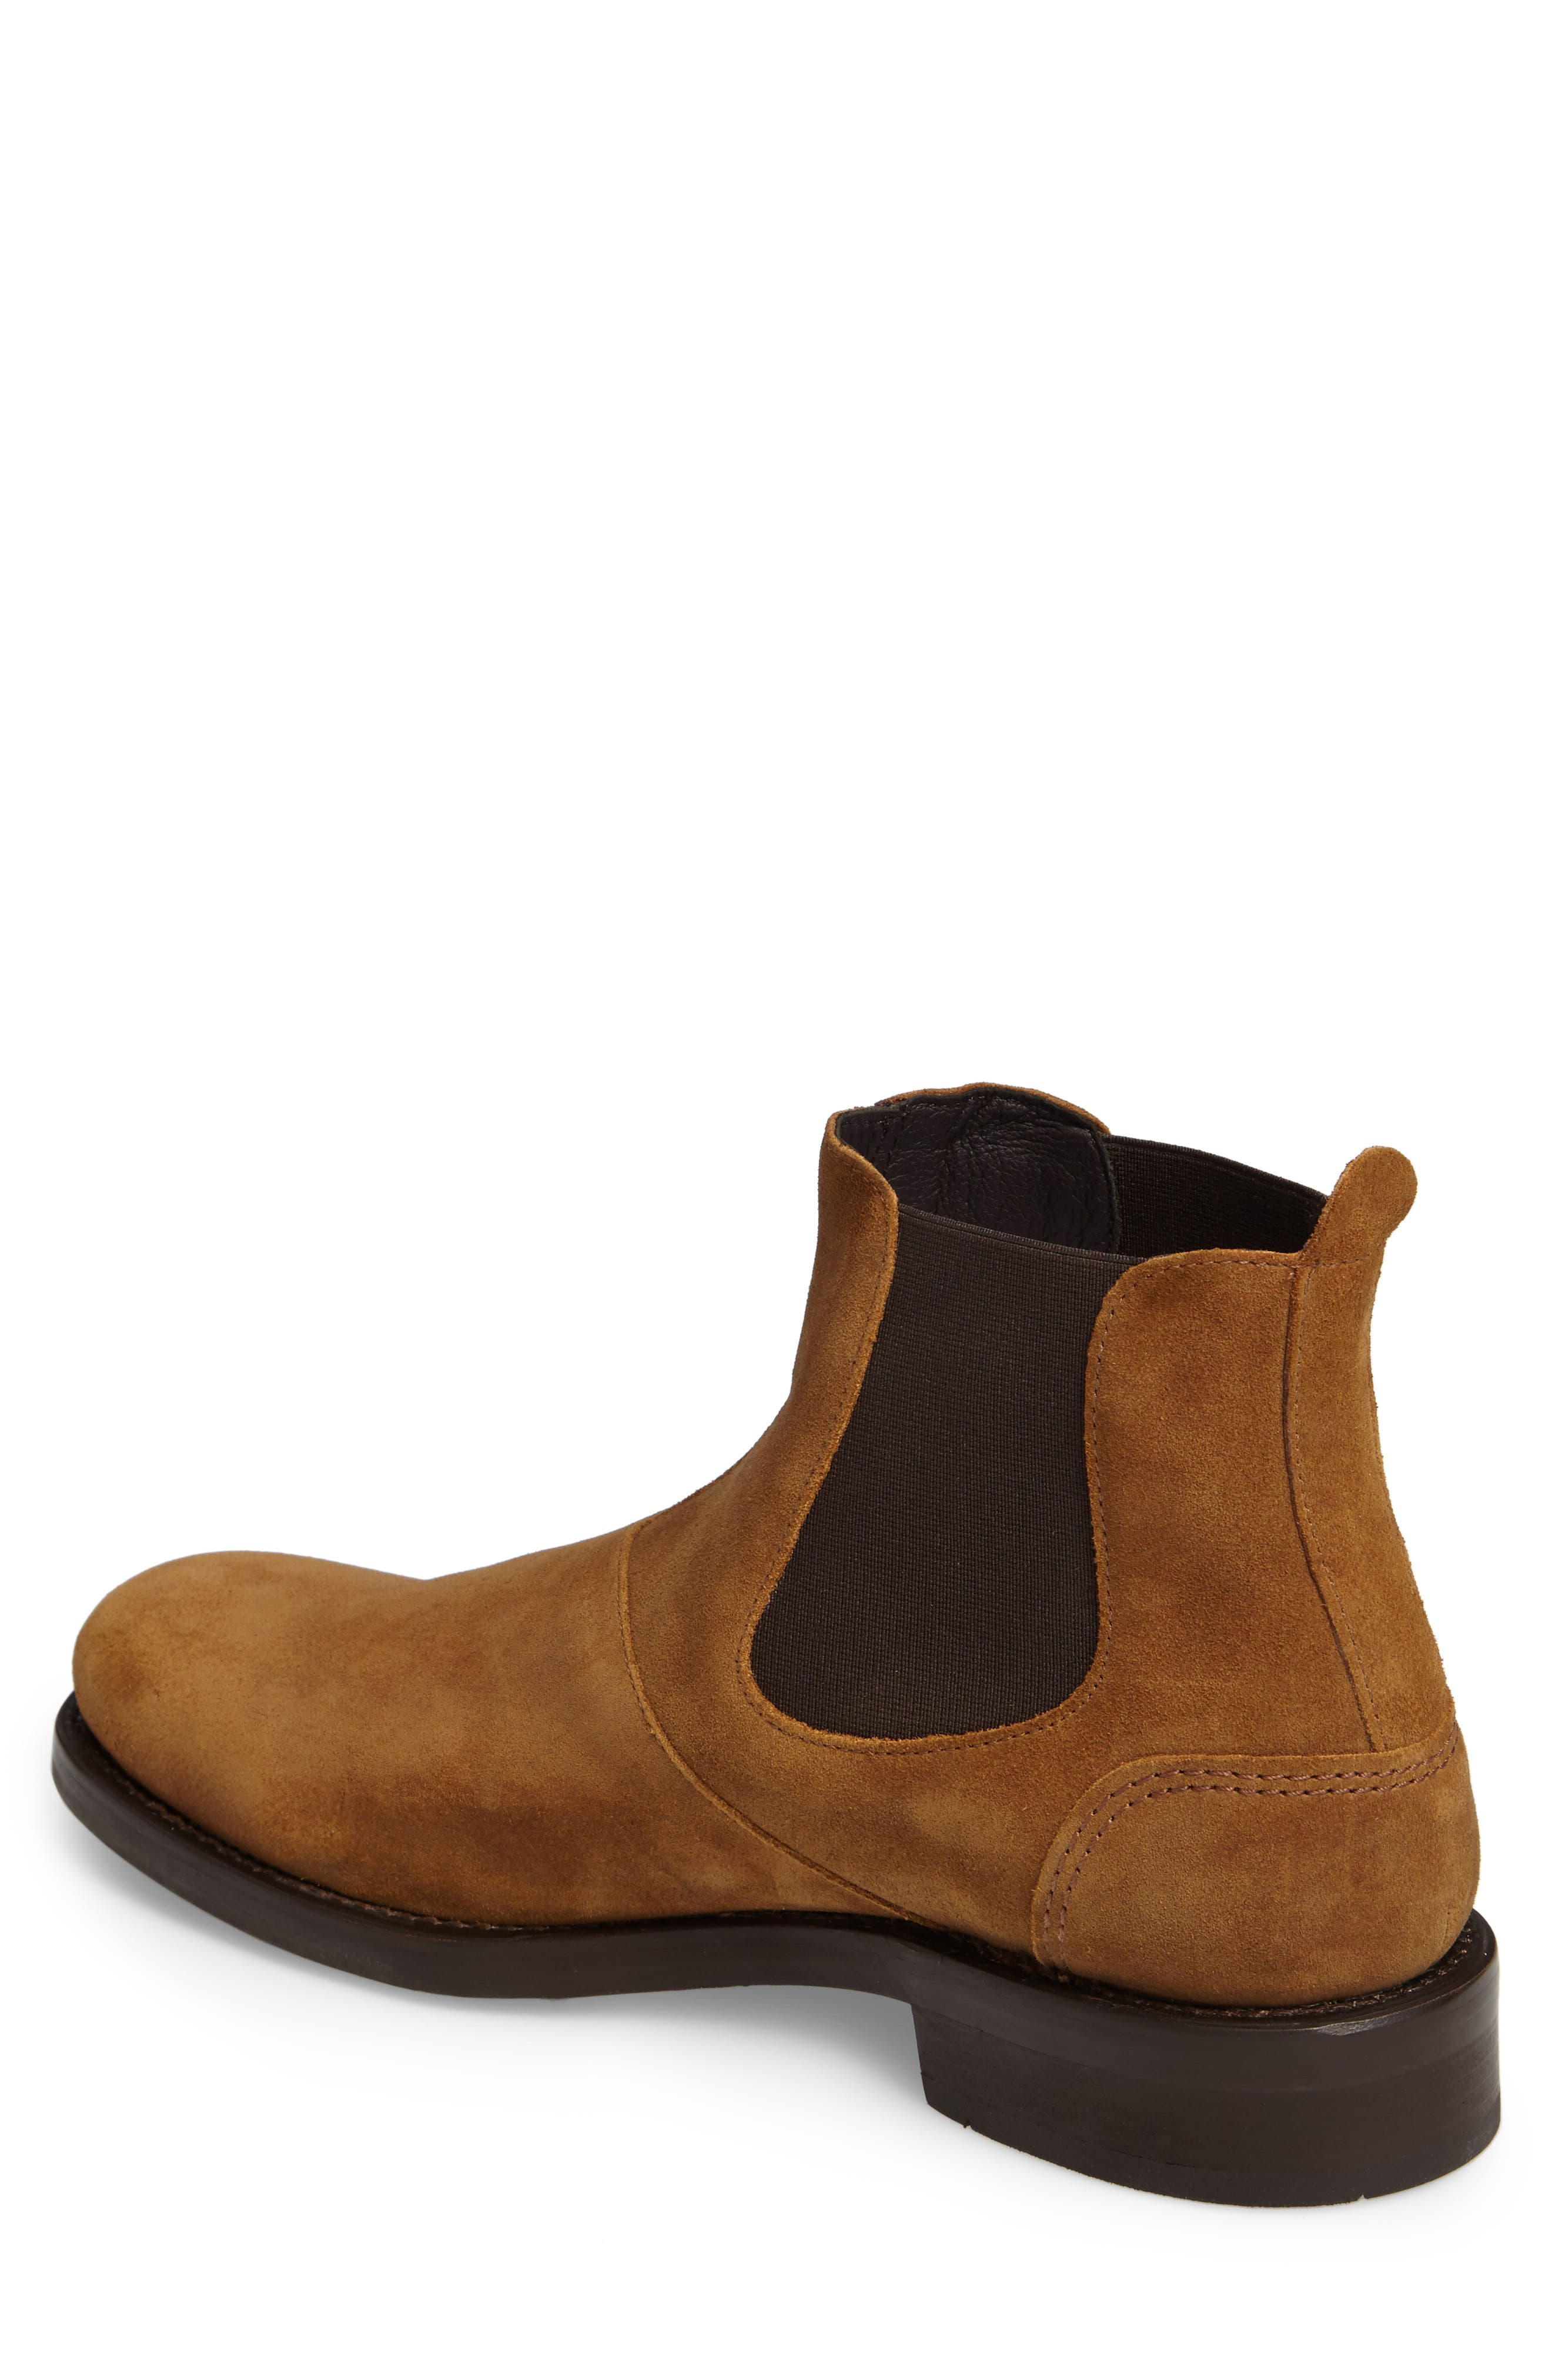 Alternate Image 2  - Wolverine Montague Chelsea Boot